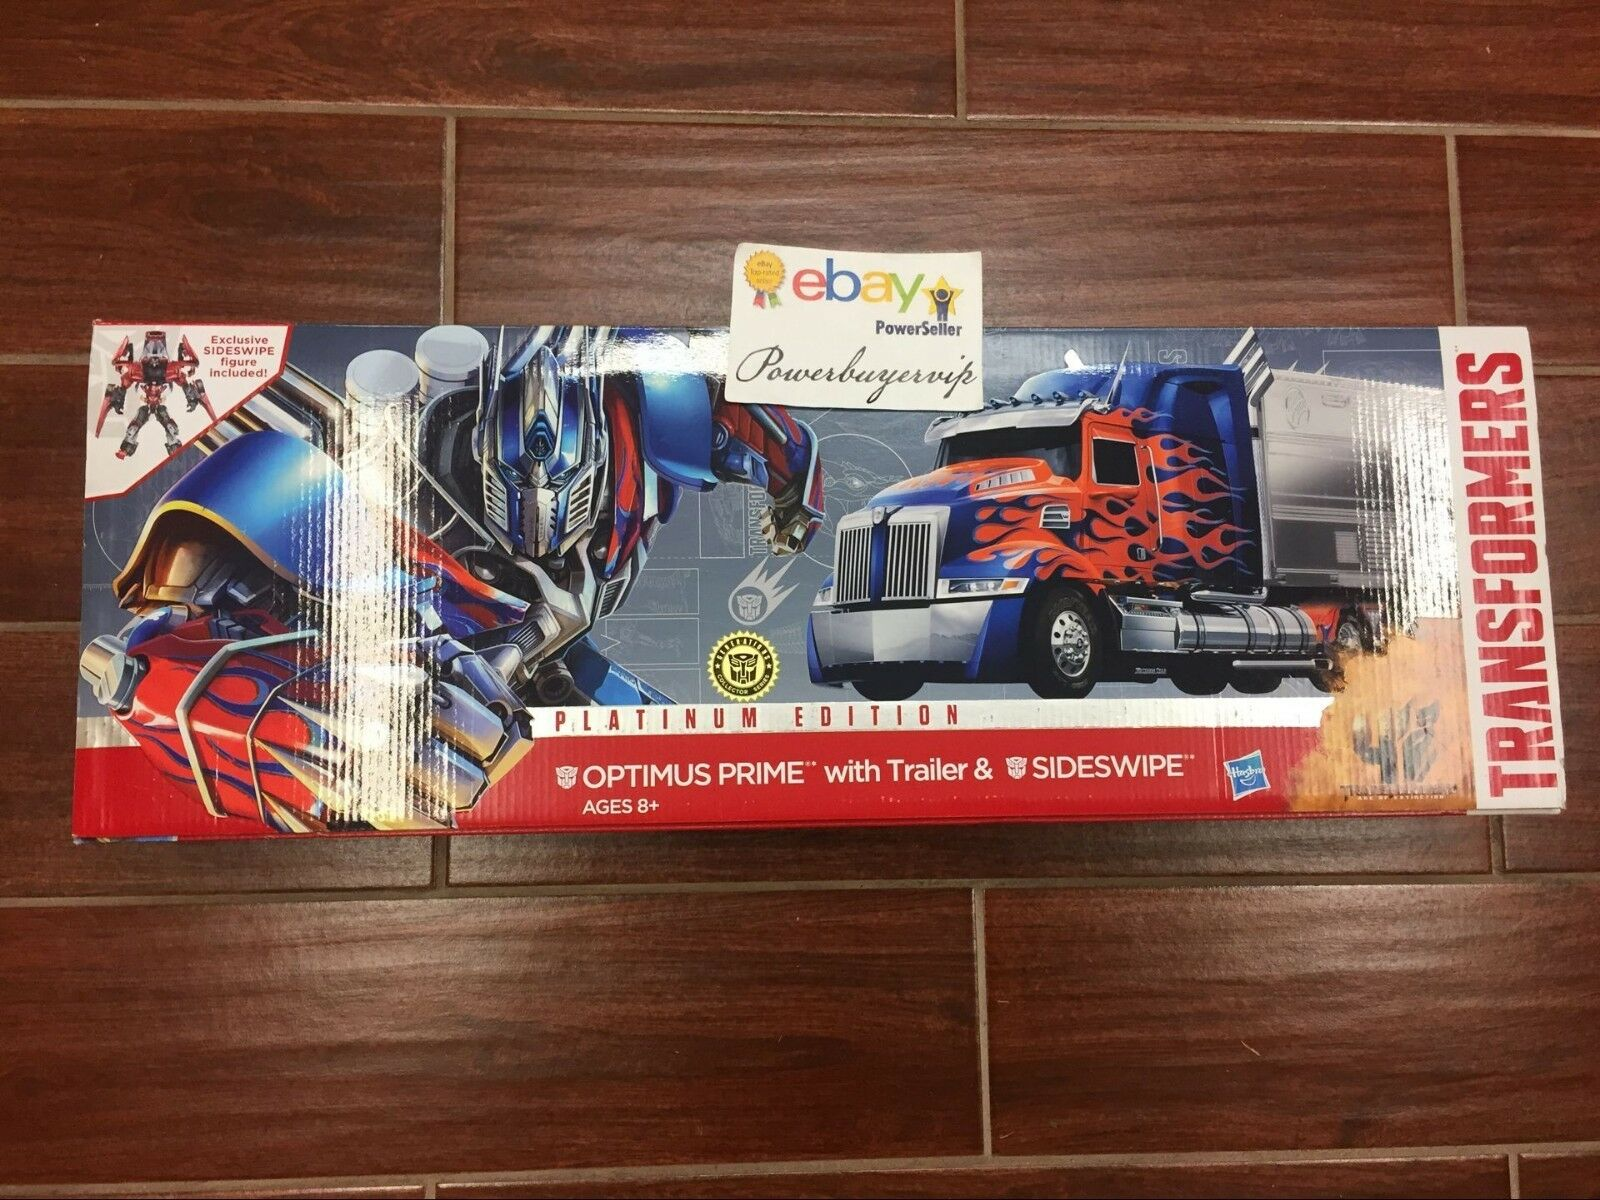 NEW Transformers Optimus Prime Platinum Edition Trailer & Sideswipe 2 day Get